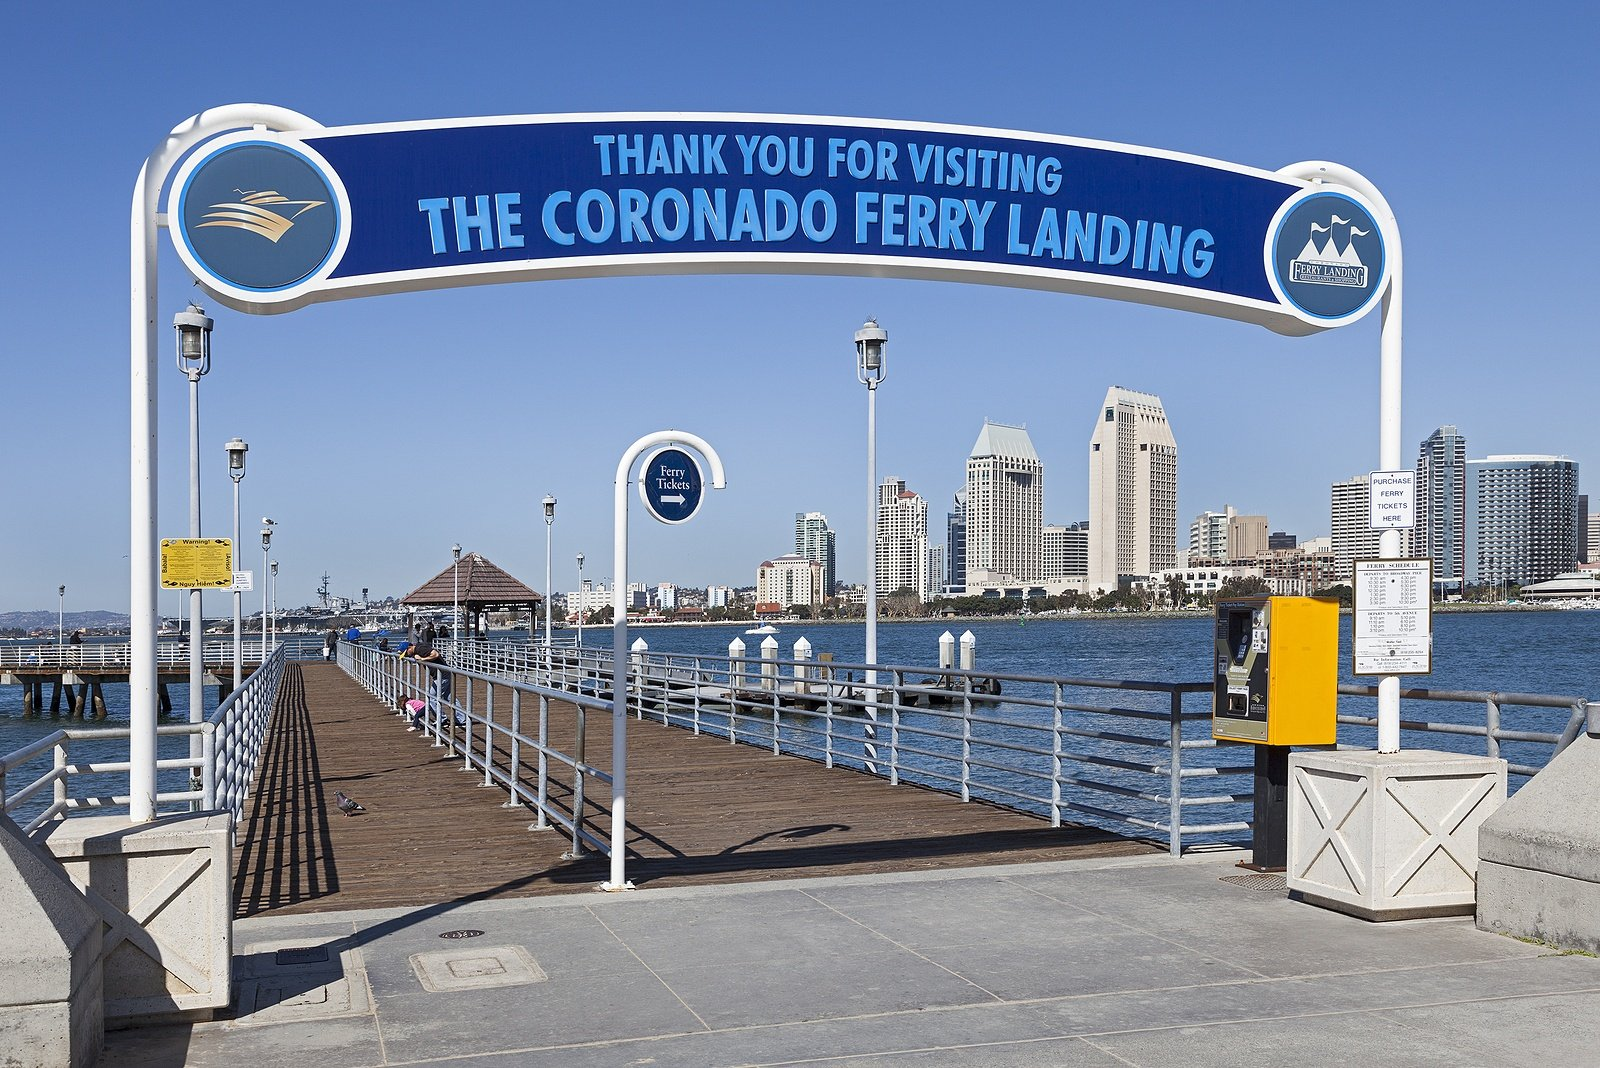 The Coronado Ferry Landing beach is right next to the pier.